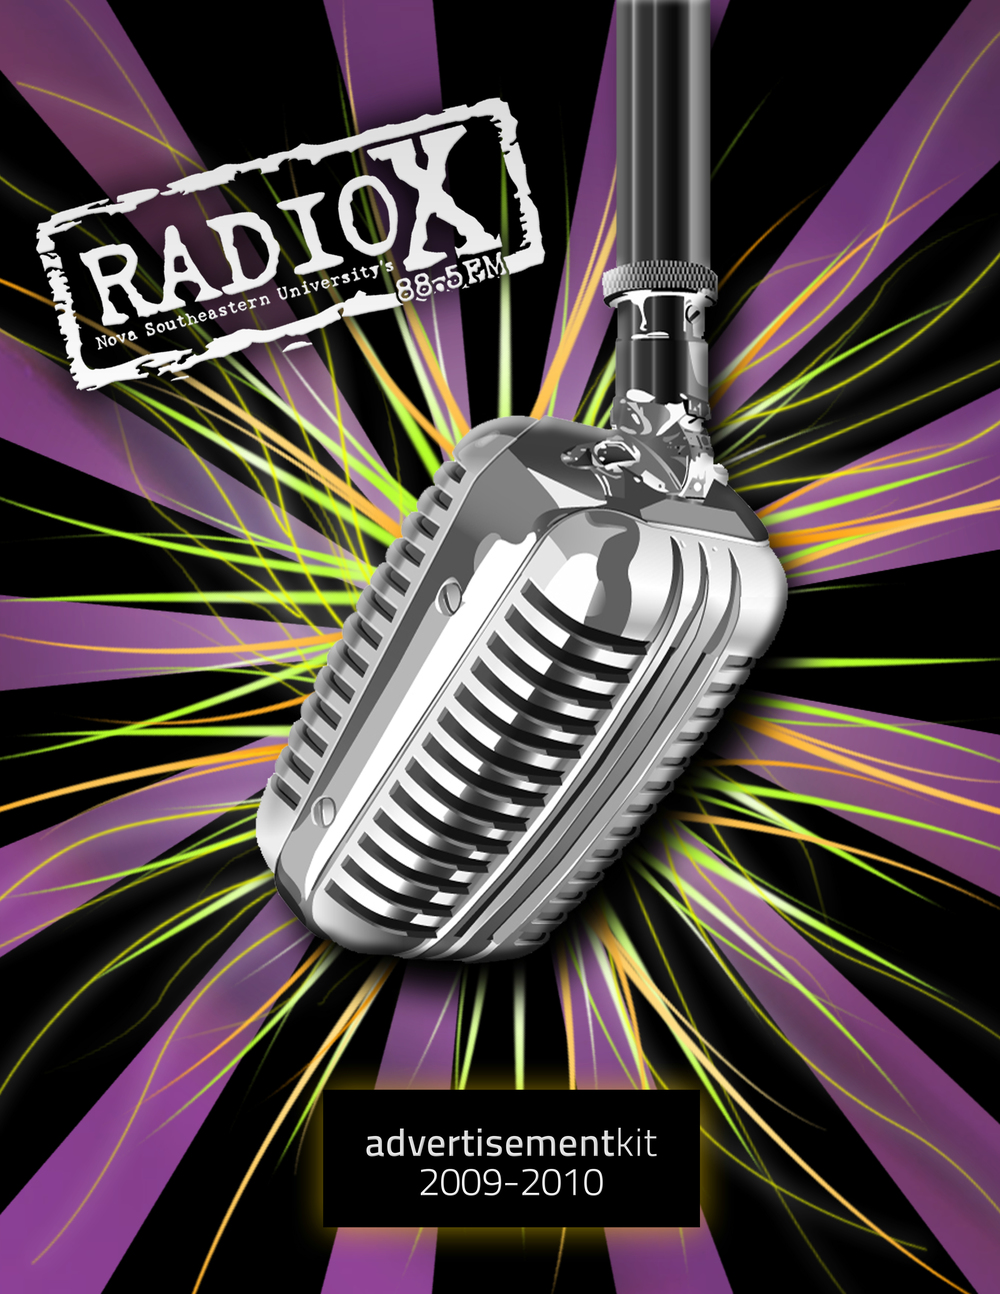 Radio X_Media Kit Cover.jpg